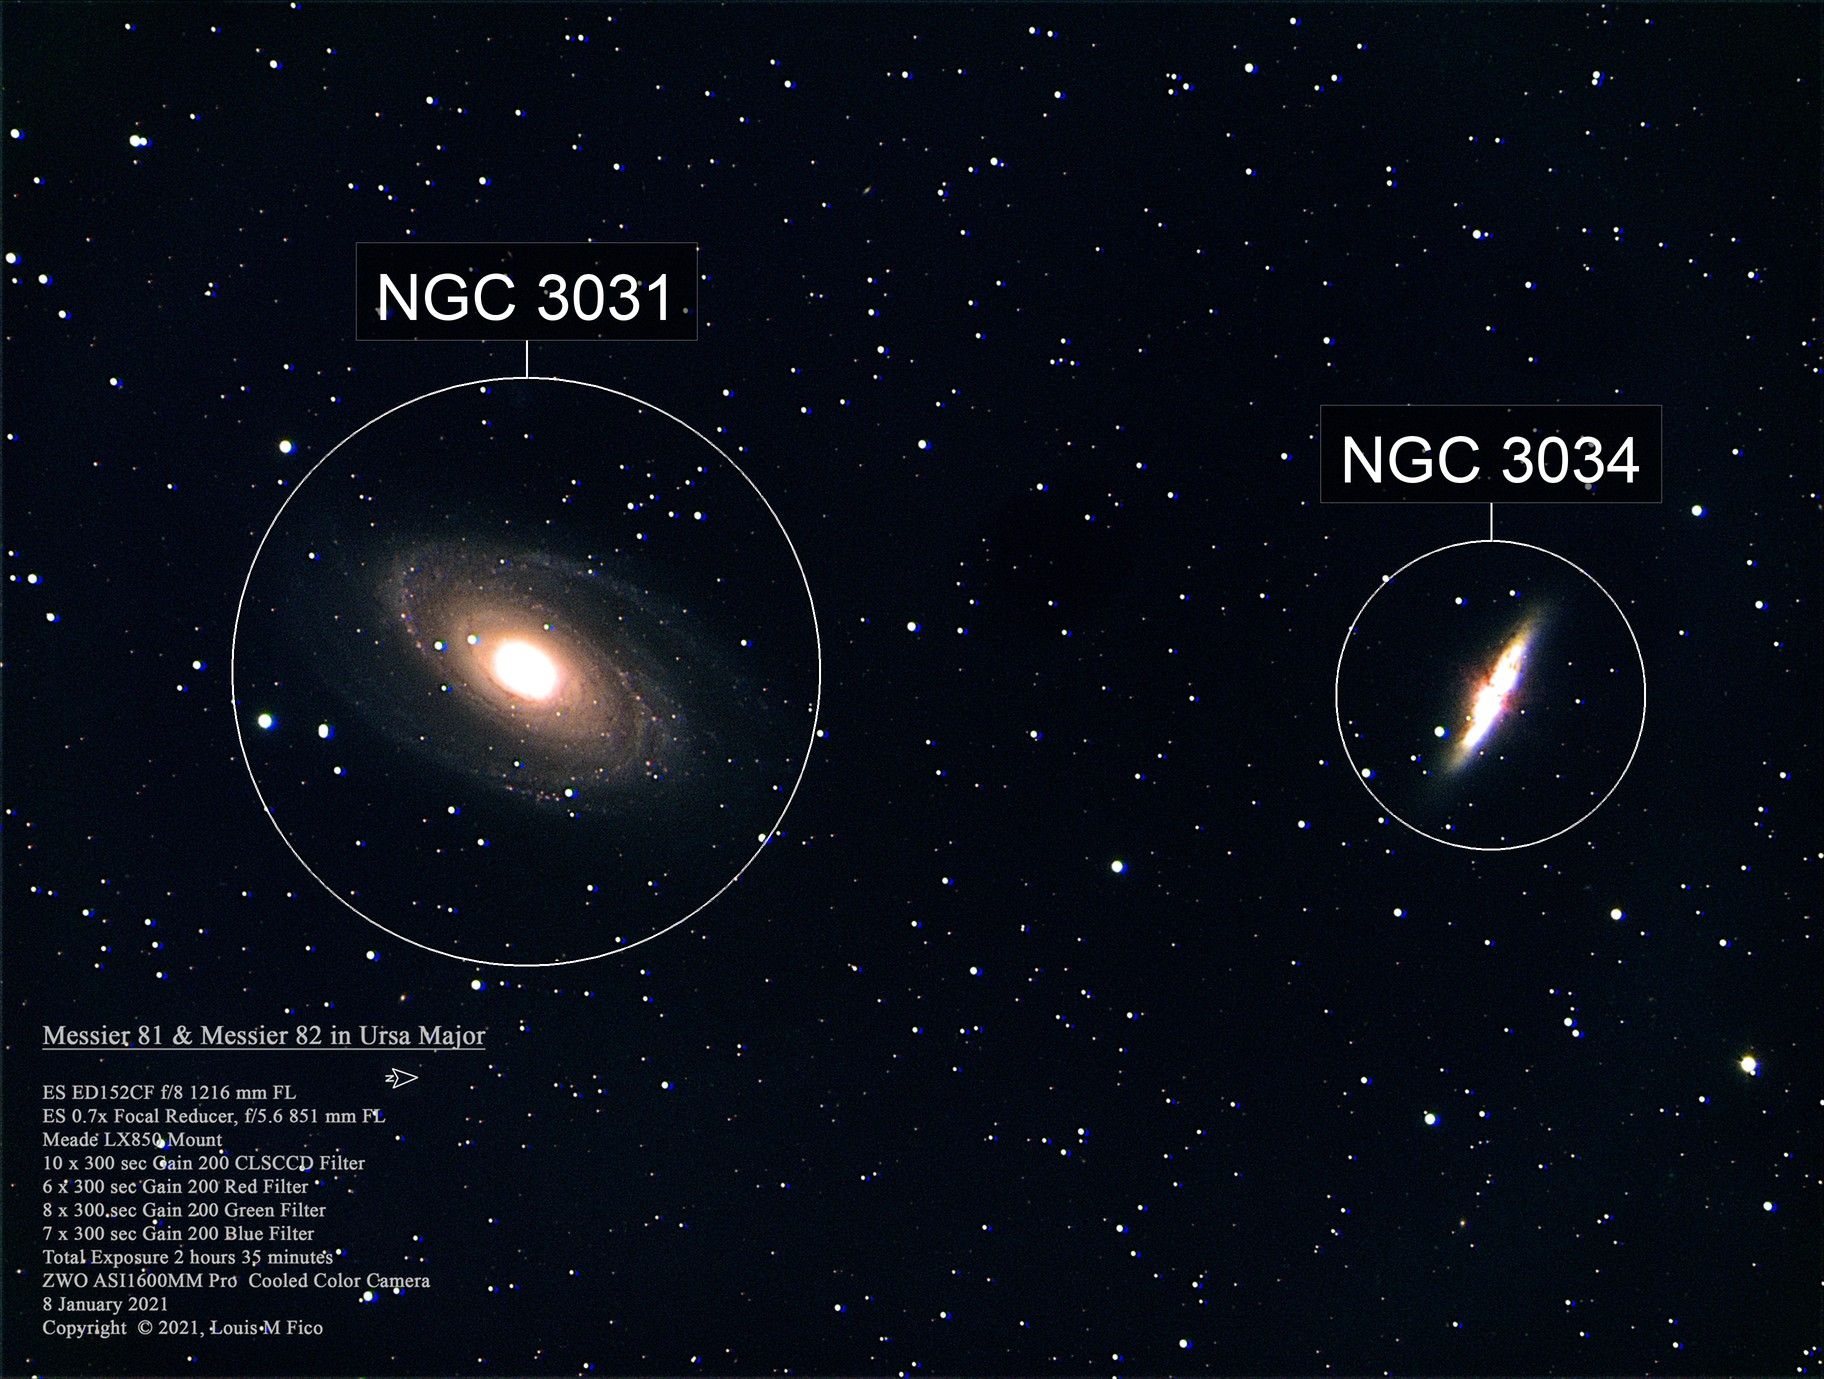 Messier 81 and Messier 82